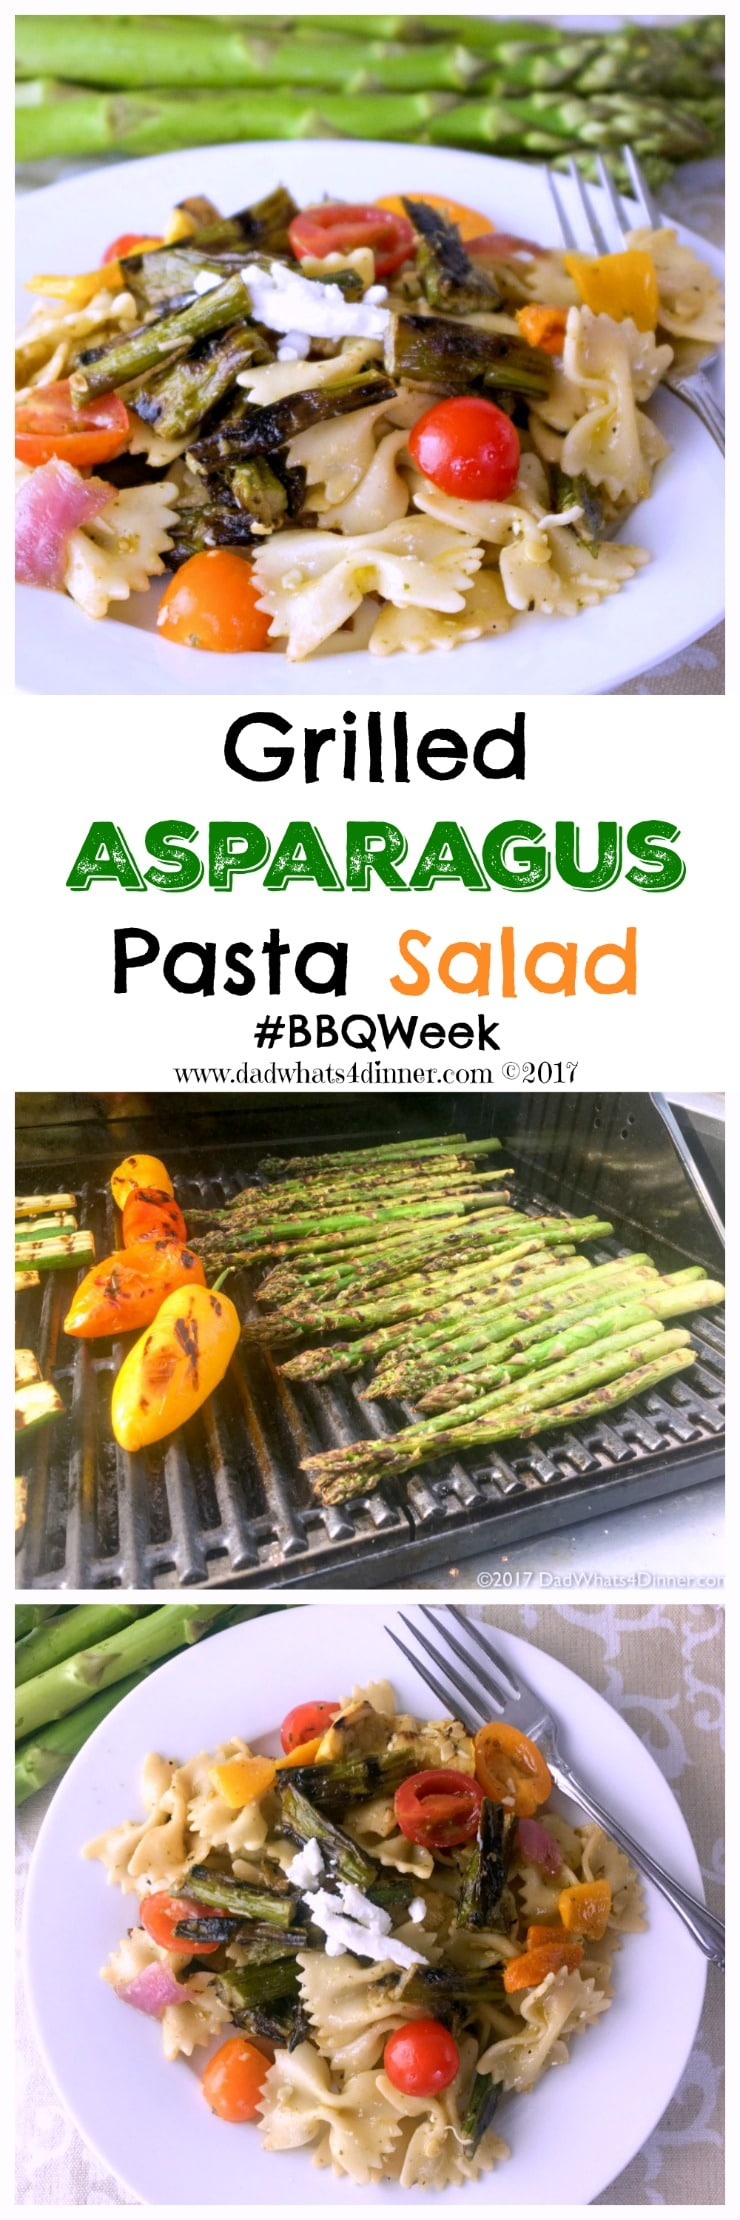 If you love pasta salad you will be blown away with my Grilled Asparagus Pasta Salad for #BBQWeek. Veggies grilled to perfection with a tangy basil and roasted garlic vinaigrette. www.dadwhats4dinner.com #ad